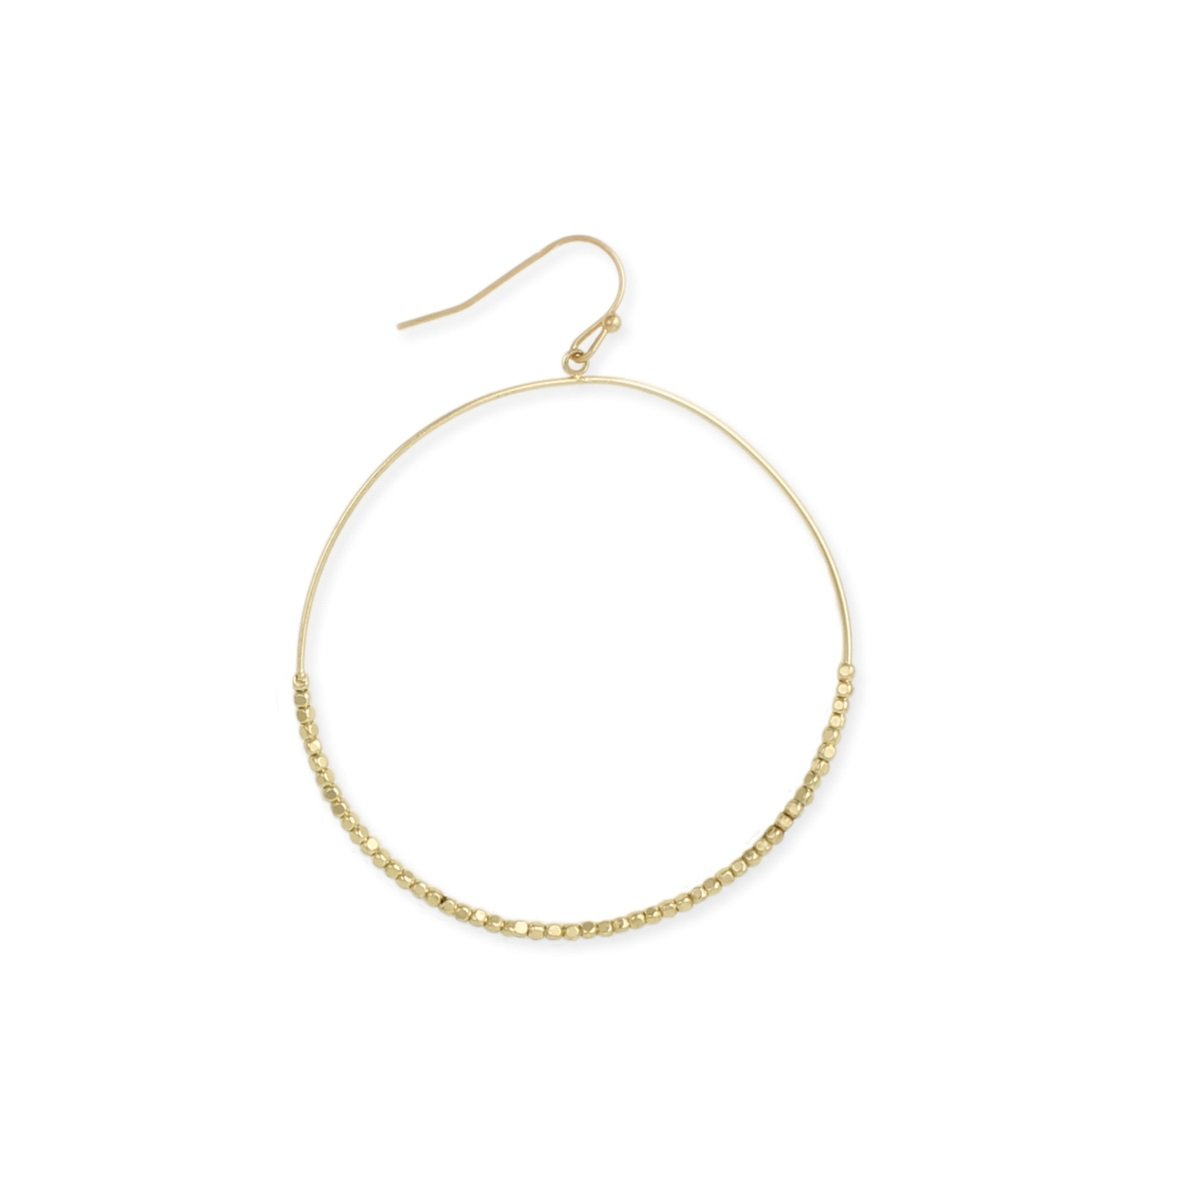 "Zen Styles Women's High Polished Plated Dewdrops Sparkling Beads Circle Dangle Hoop Earrings with Hook Clasps, 2"" x ½"", Hypoallergenic (Gold, gold-plated-base)"